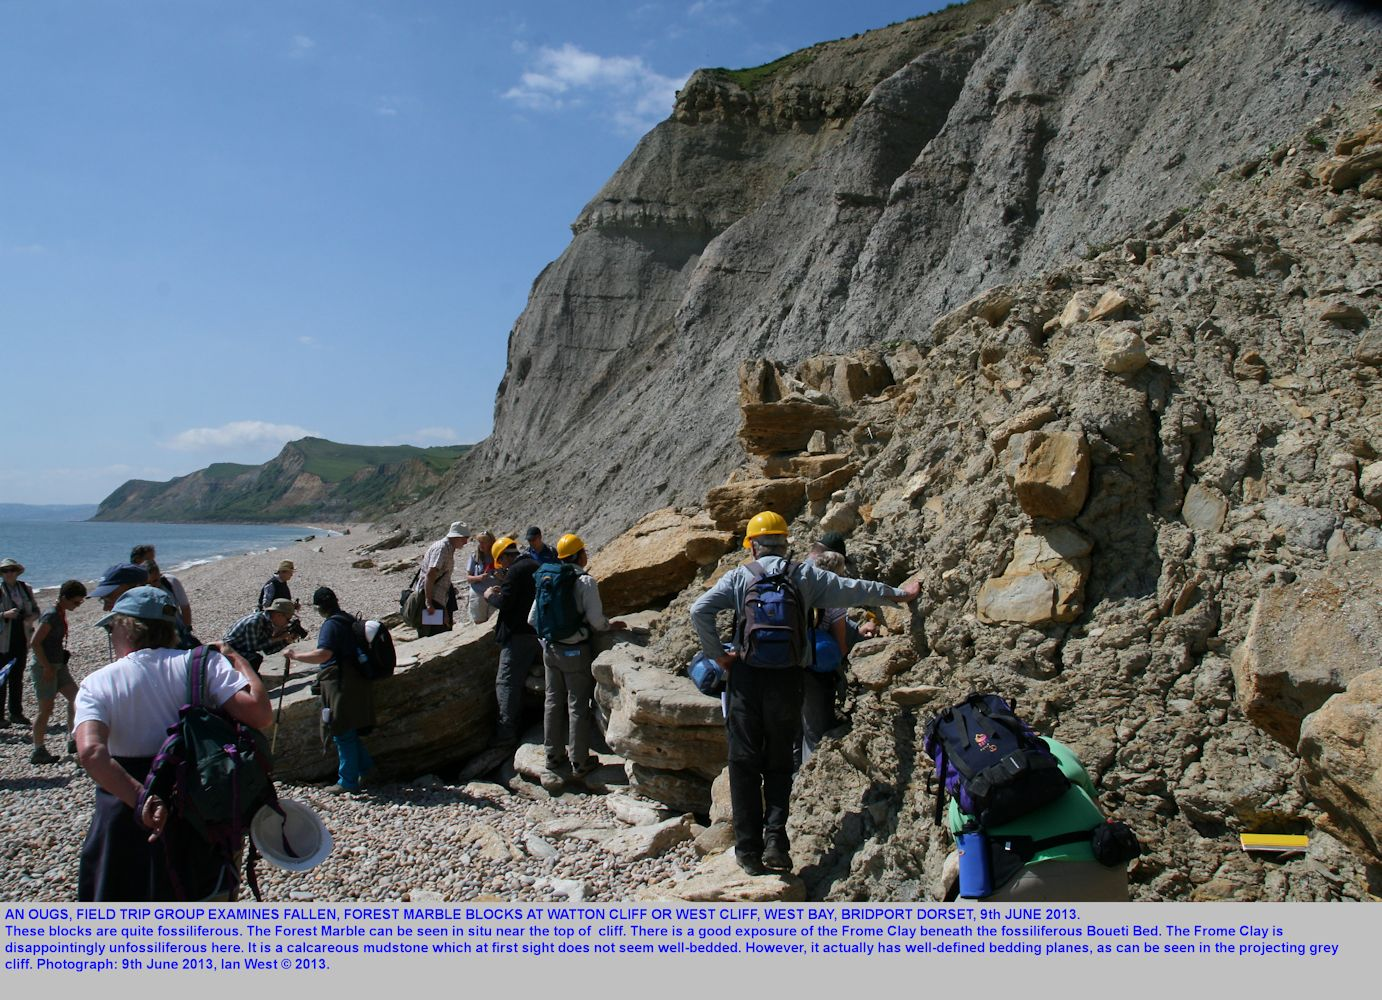 An OUGS field trip group examine fallen blocks of Forest Marble at Watton Cliff, West Bay, Bridport, Dorset, June 2013